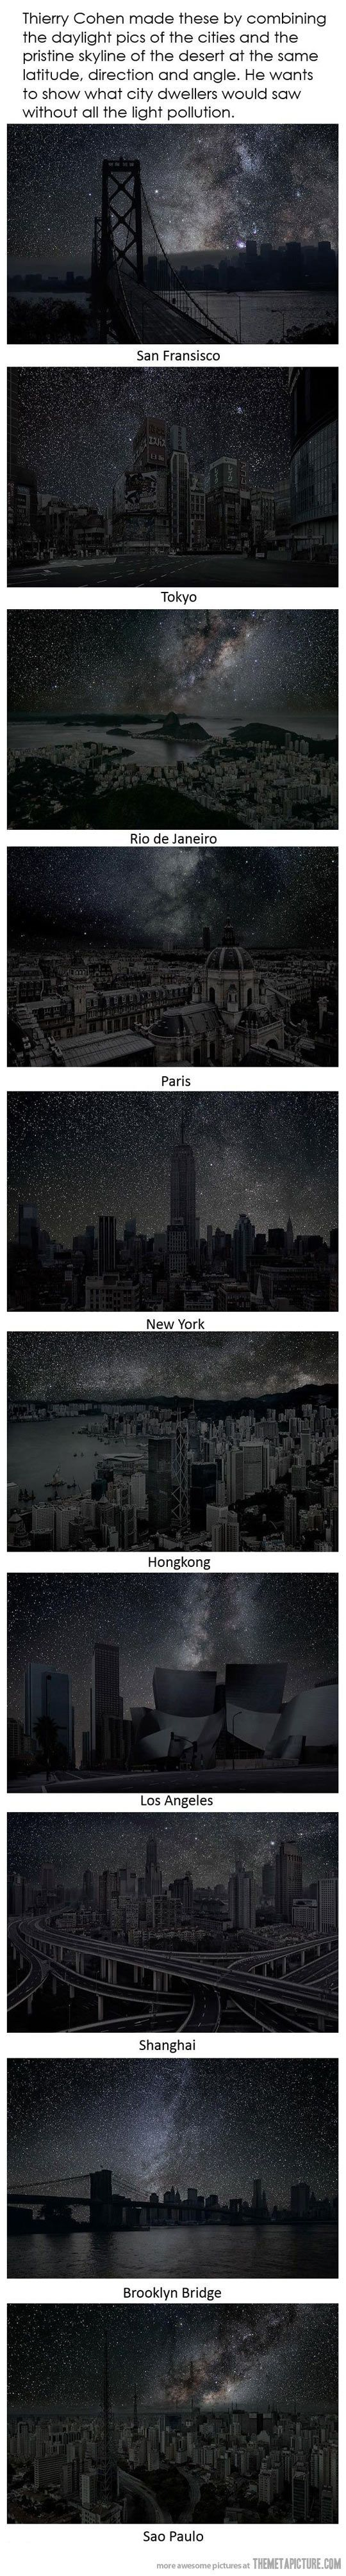 Thats gorgeous this is why I wished we didnt have lights!!! But we need them too so Im torn!